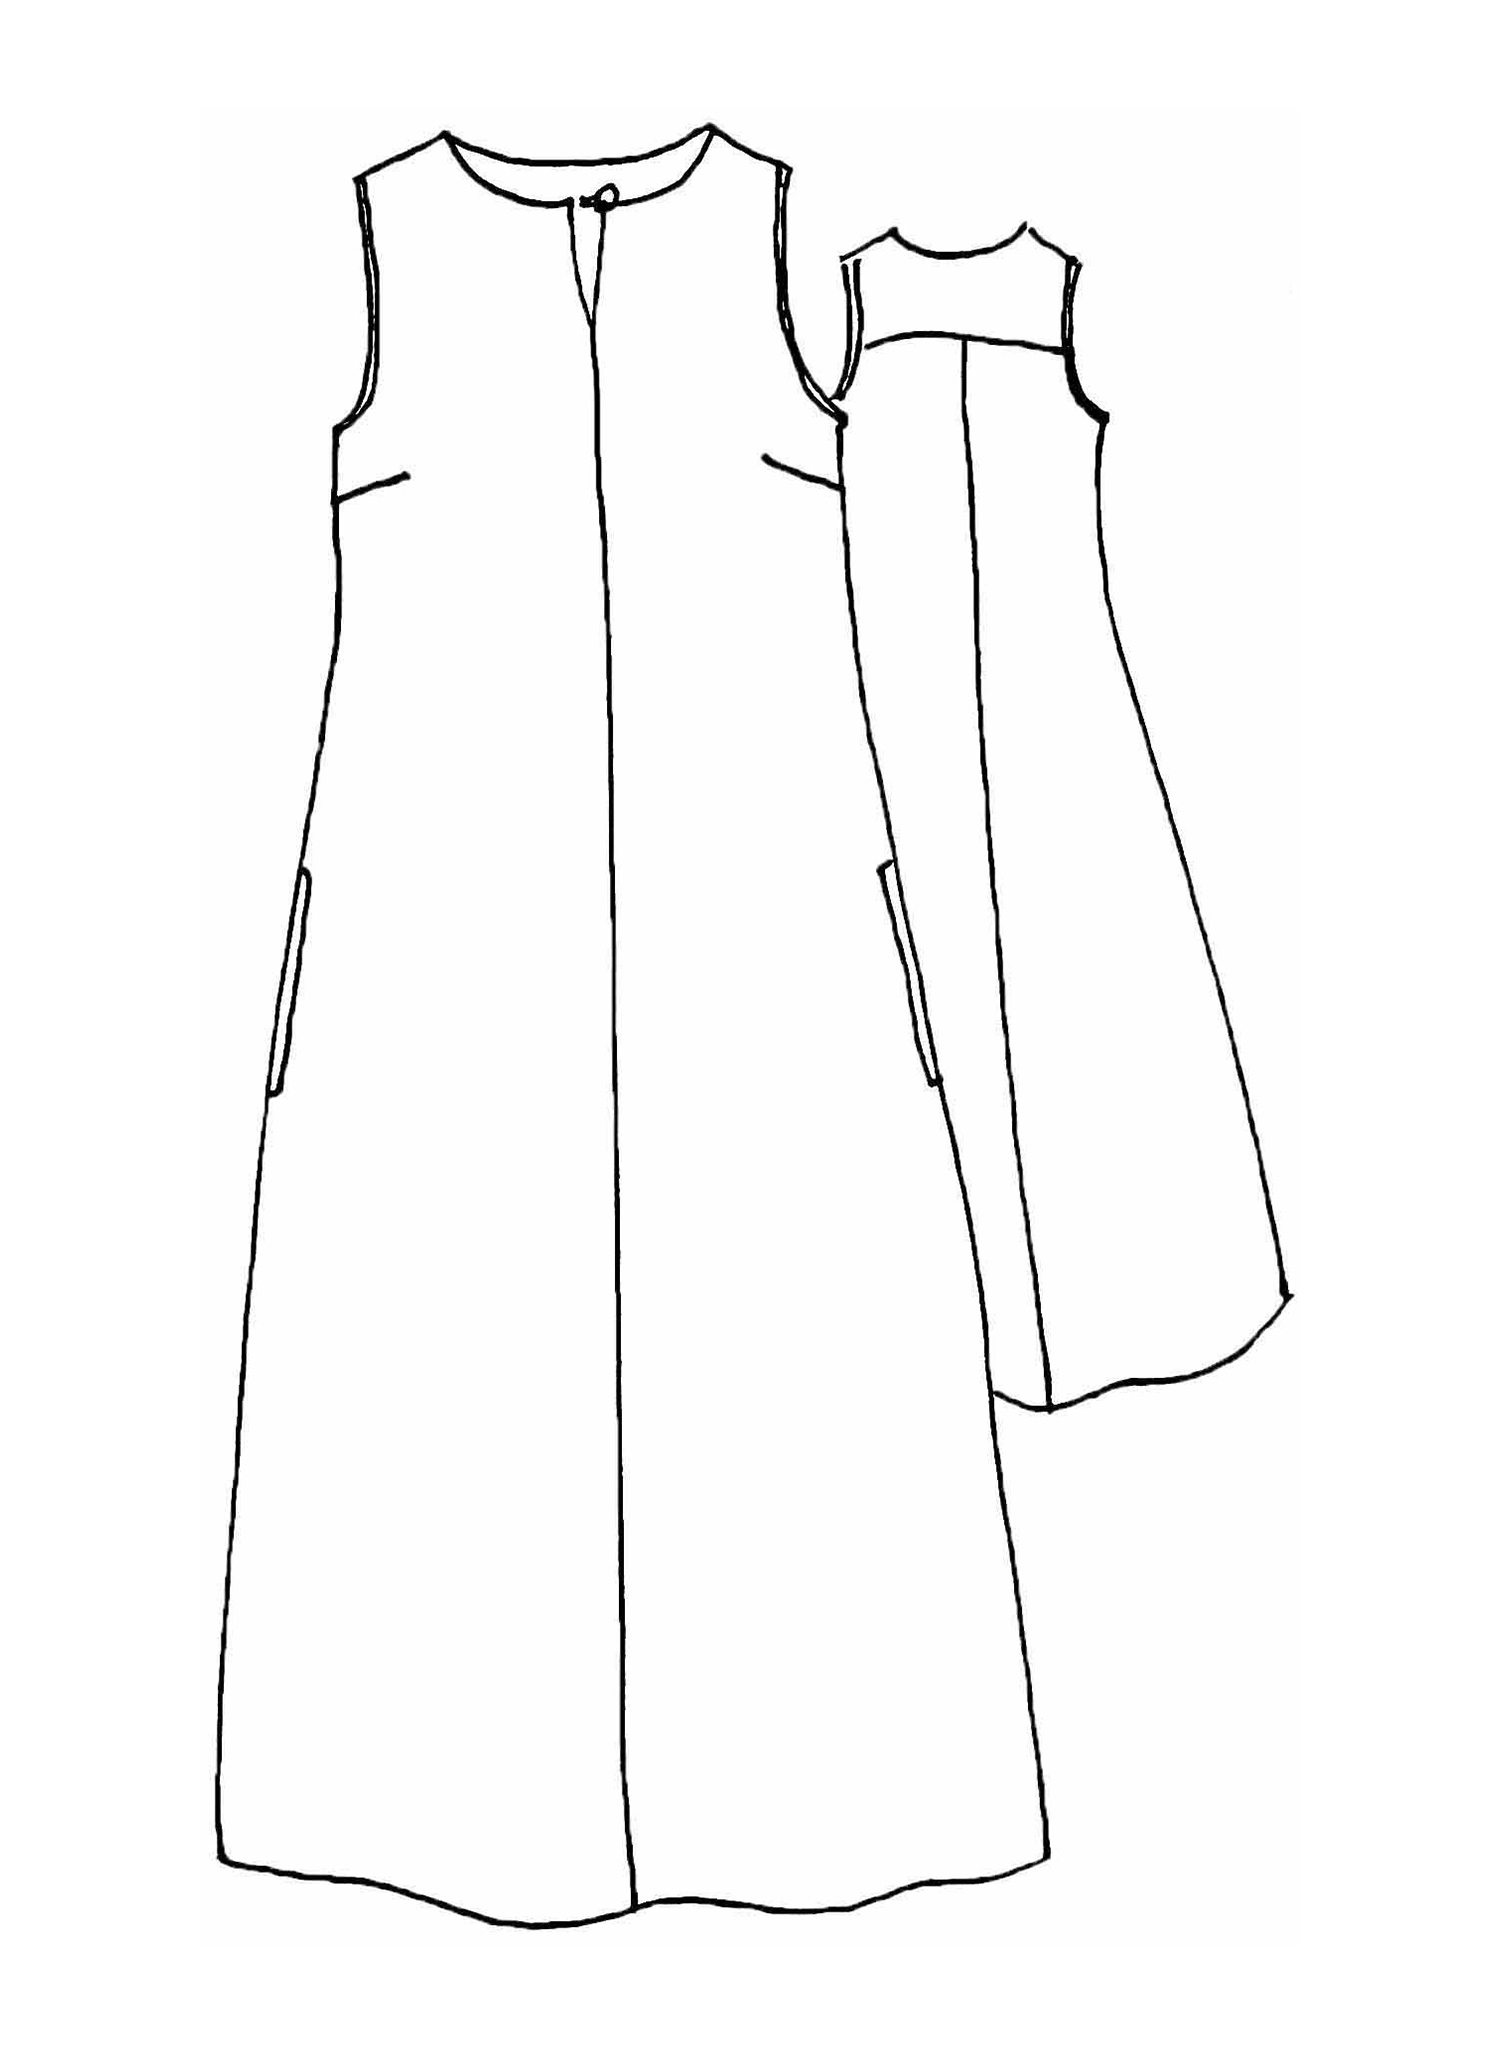 Keyhole Dress sketch image